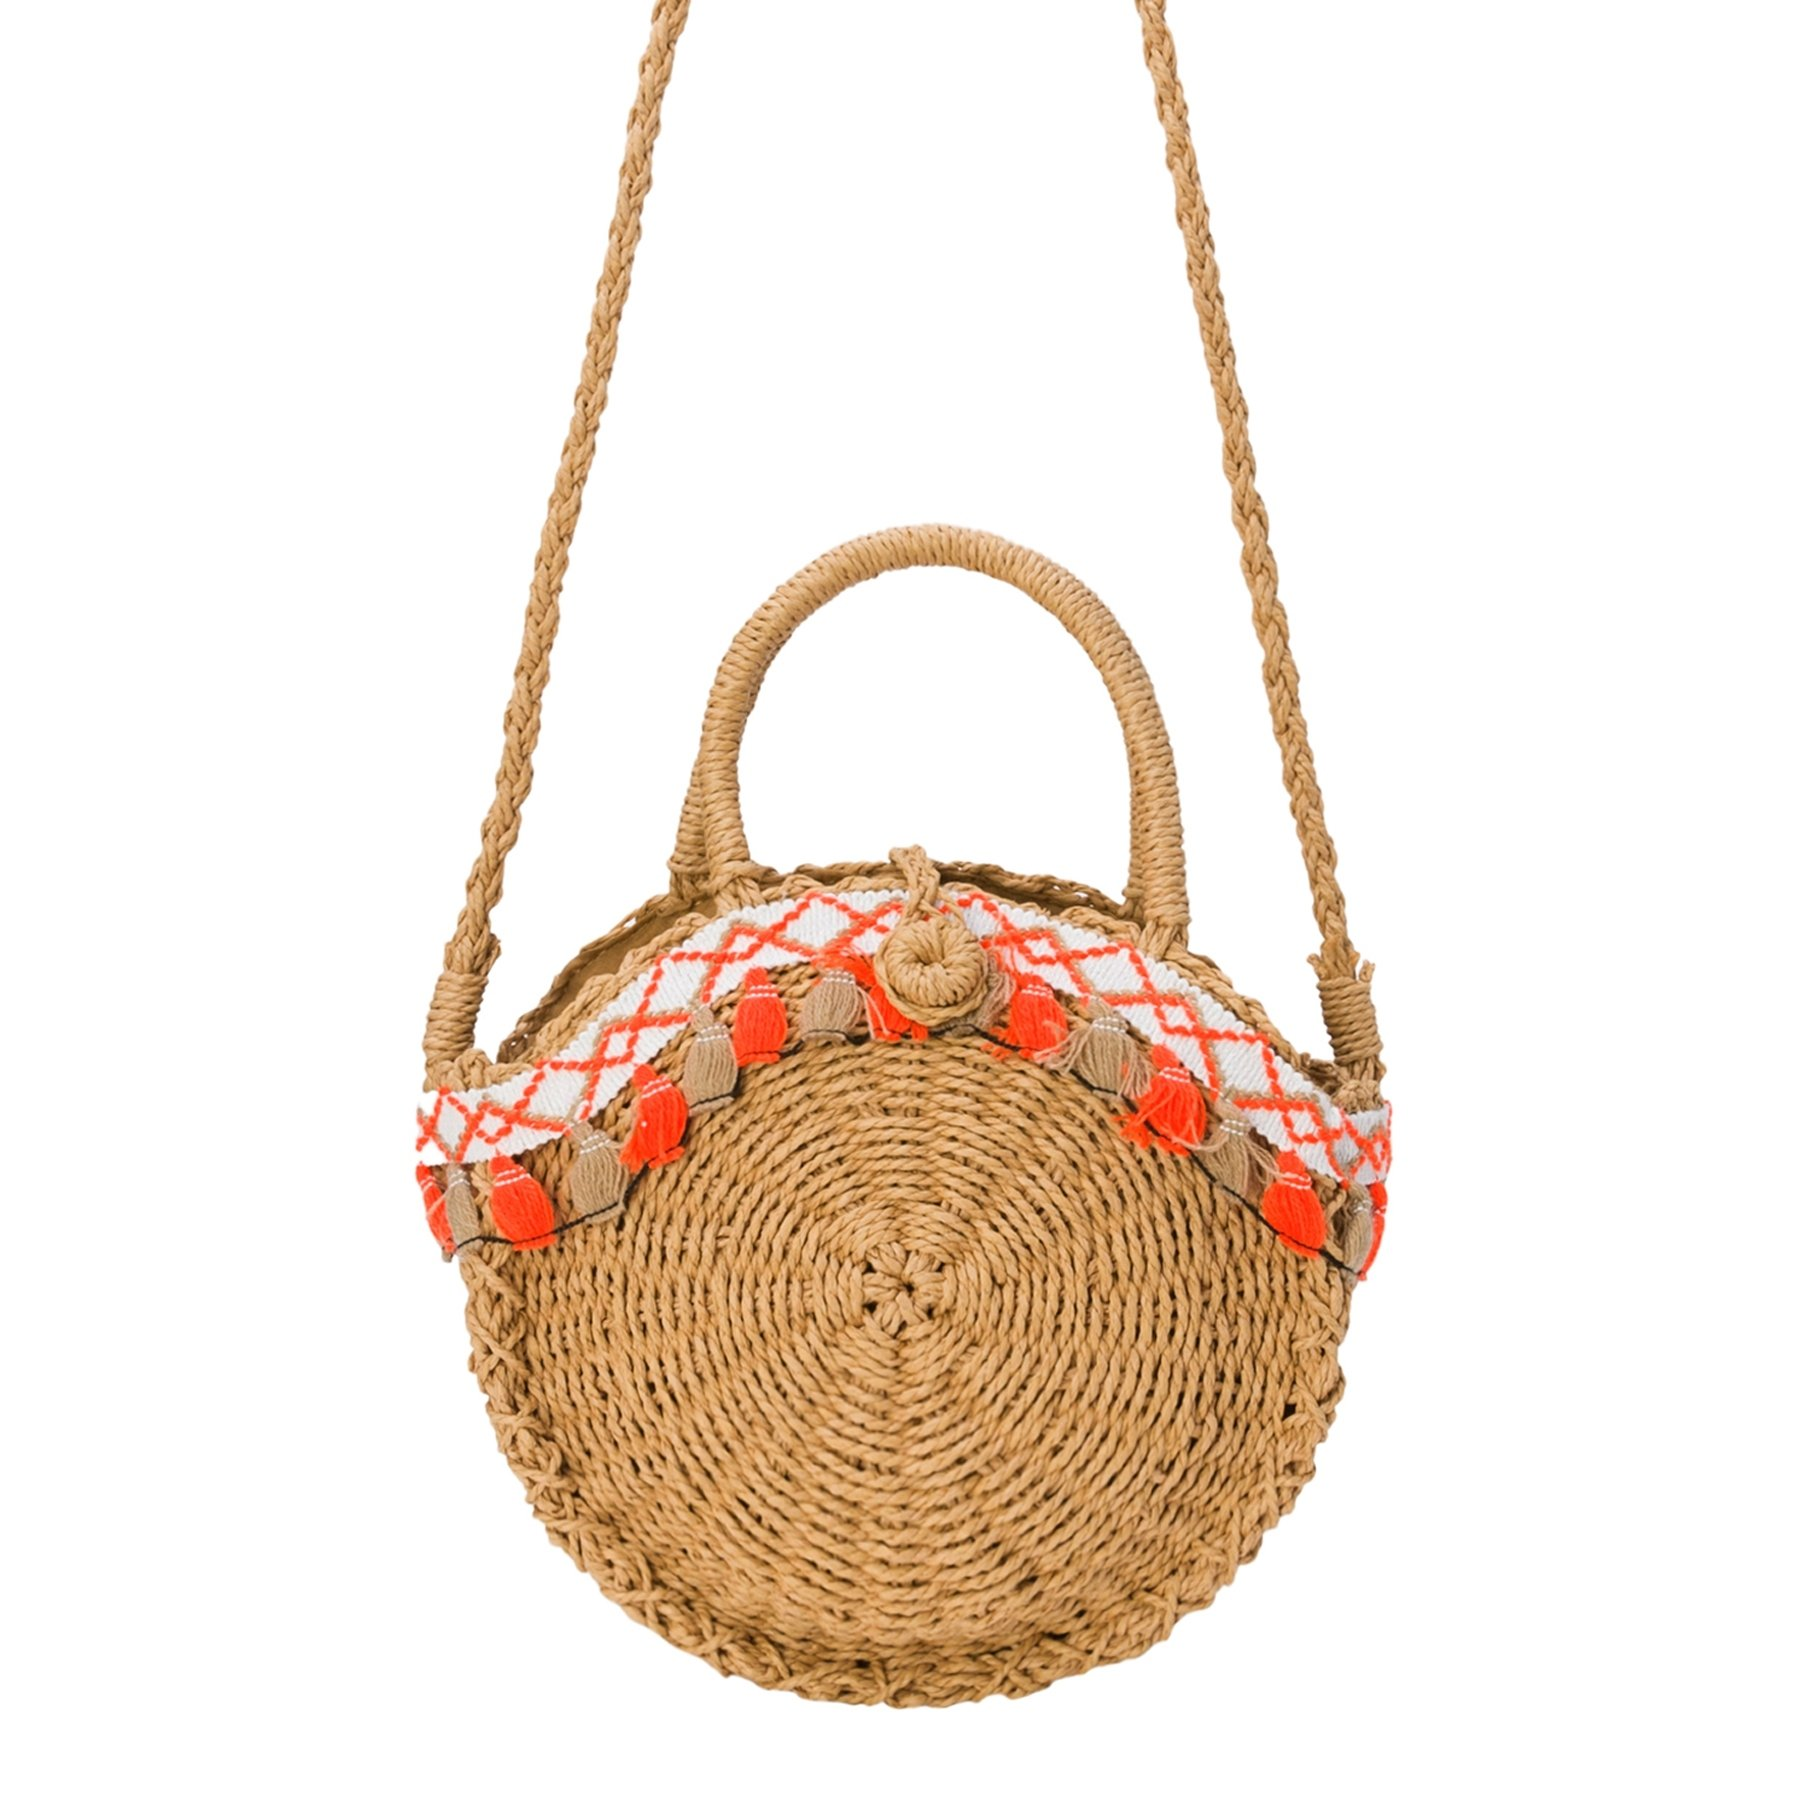 Oriental Day Boho Handwoven Round Crossbody with Chic Natural Straw Summer Purse Bag with Coachella Theme 28 X 8 X 32(L X W X H including holder) cm. Brown